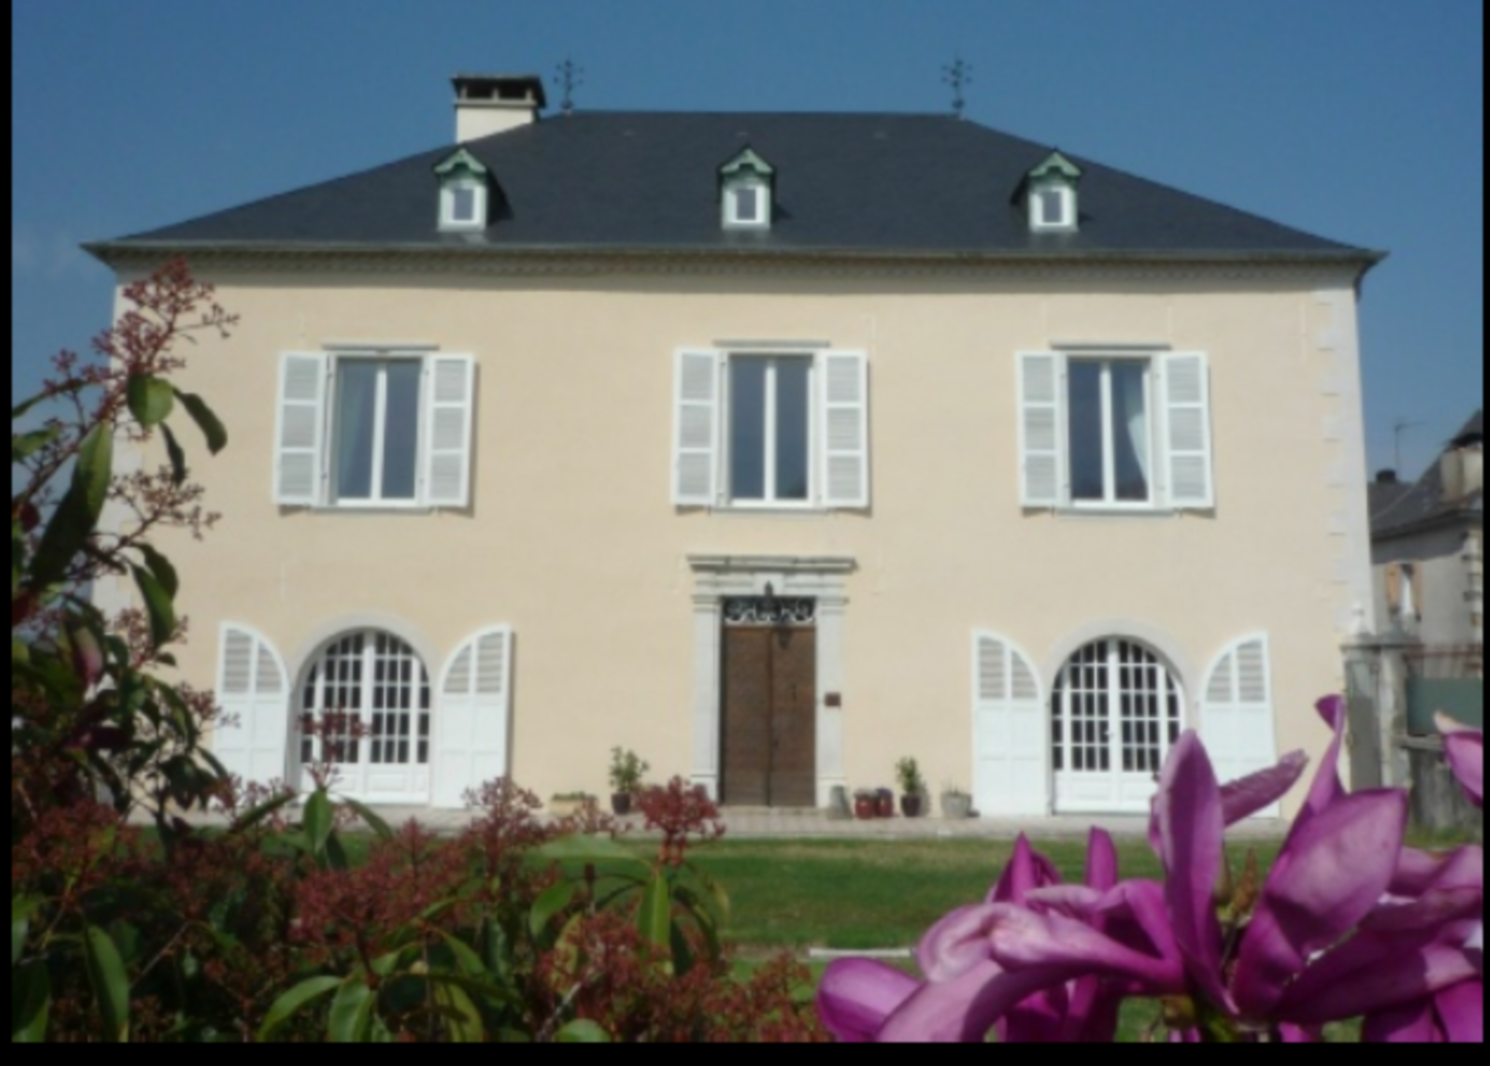 A house in front of a building at Numero Dix Chambres d' hôtes.